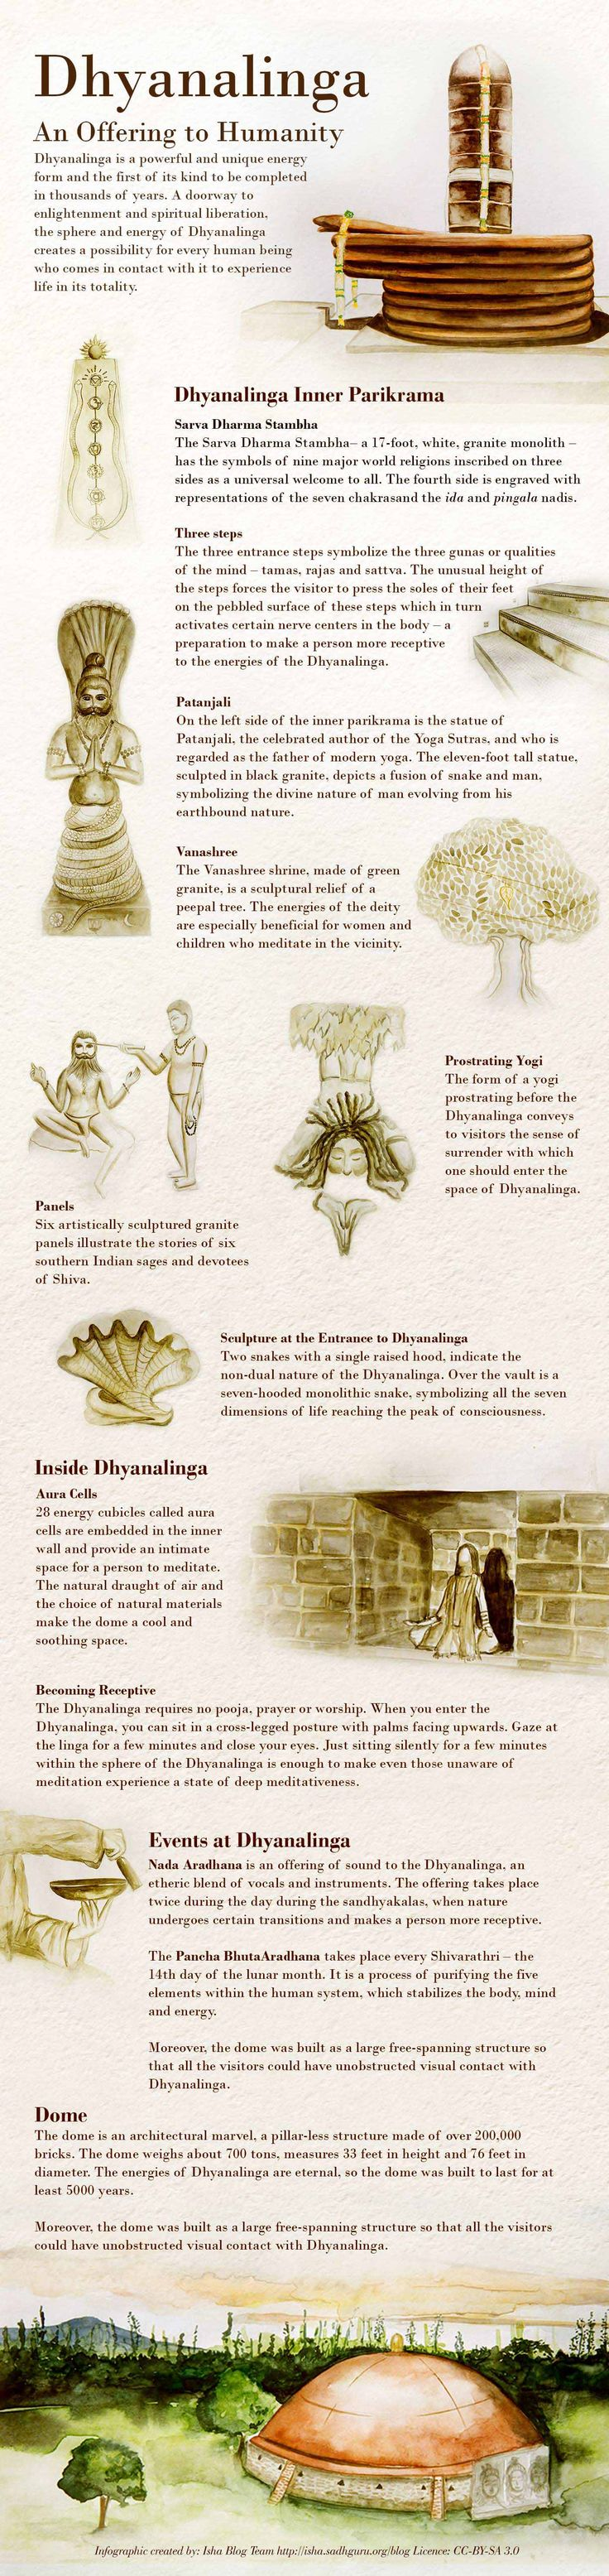 Dhyanalinga – An Offering to Humanity